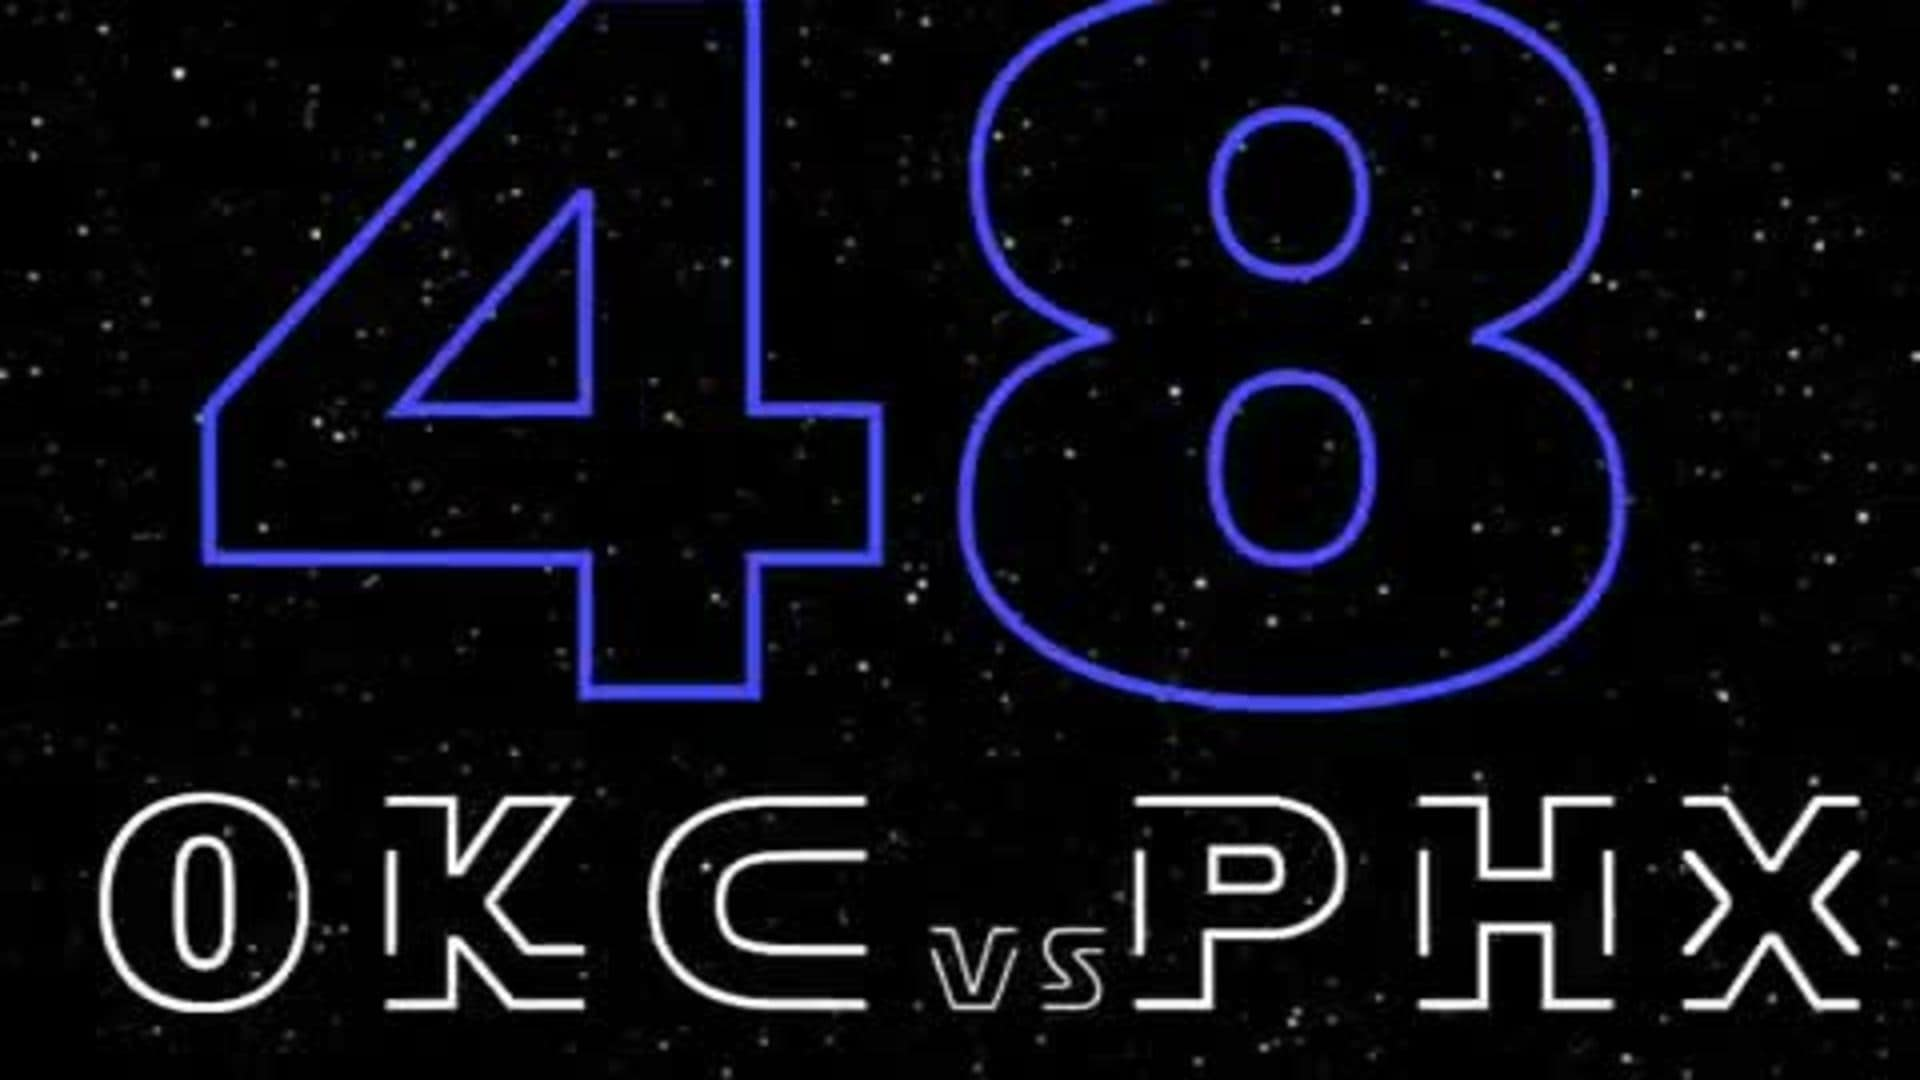 The 48: A Galactic Victory